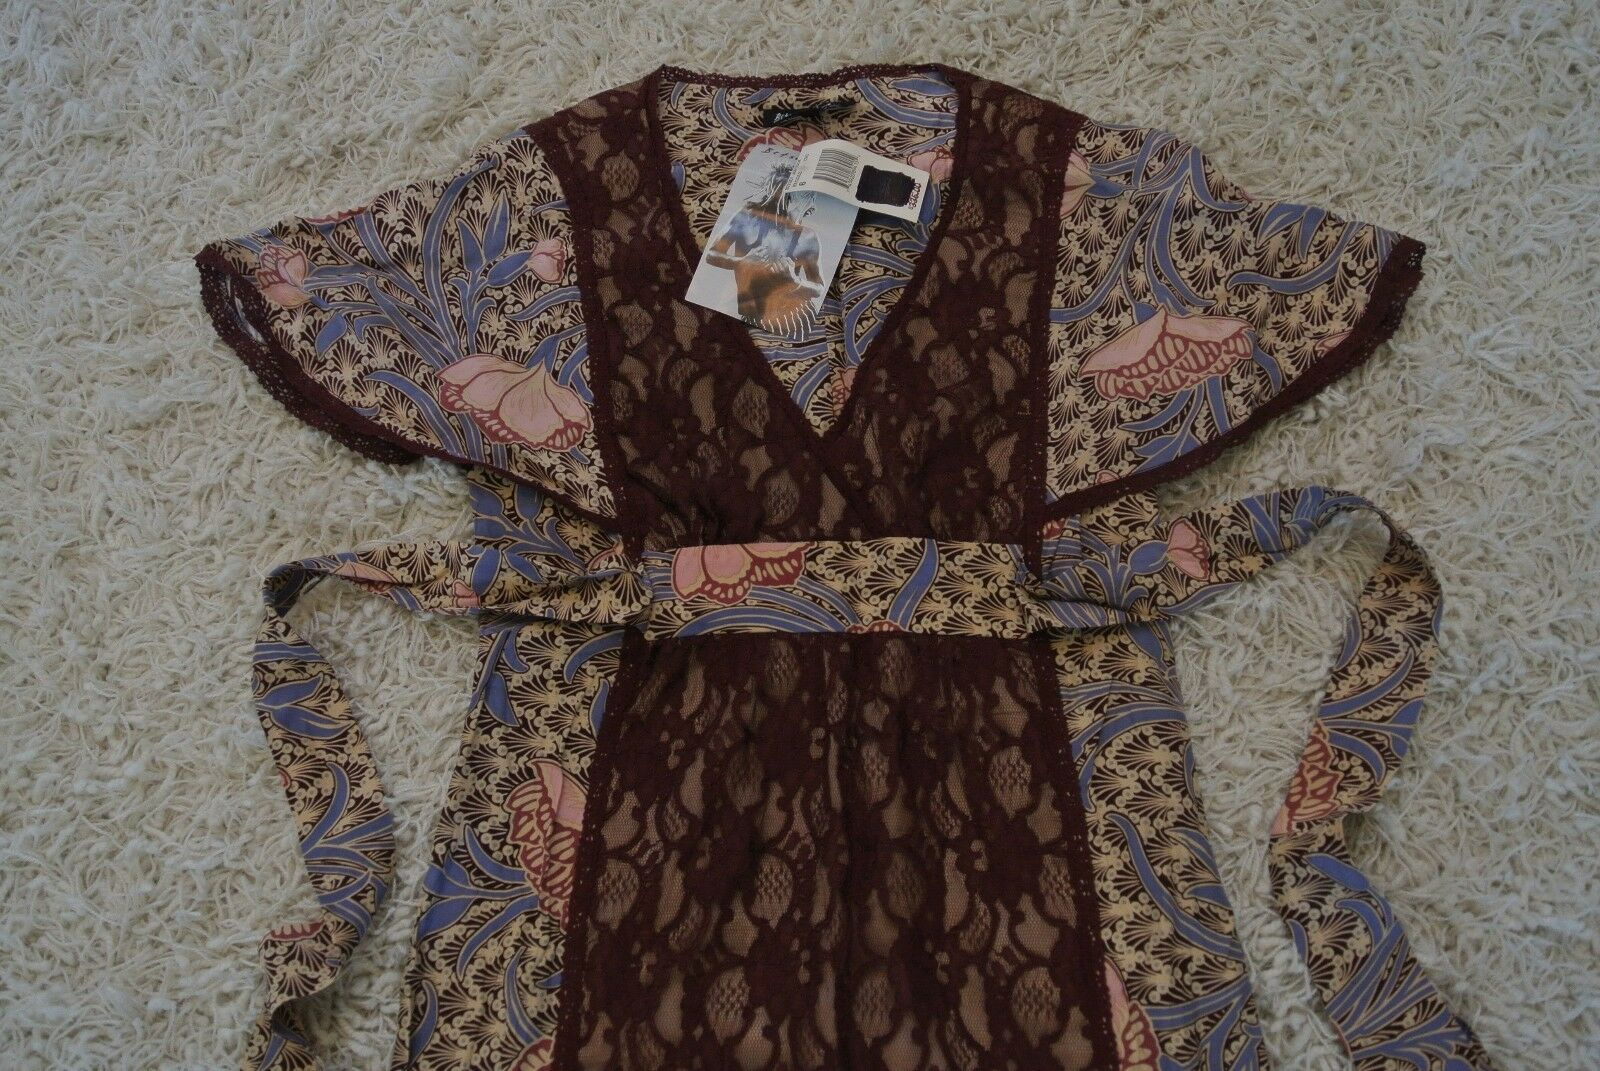 BETSEY JOHNSON SILK Floral Lace Boho Dress 6 NWT 335 Gorgeous Fabric & Design